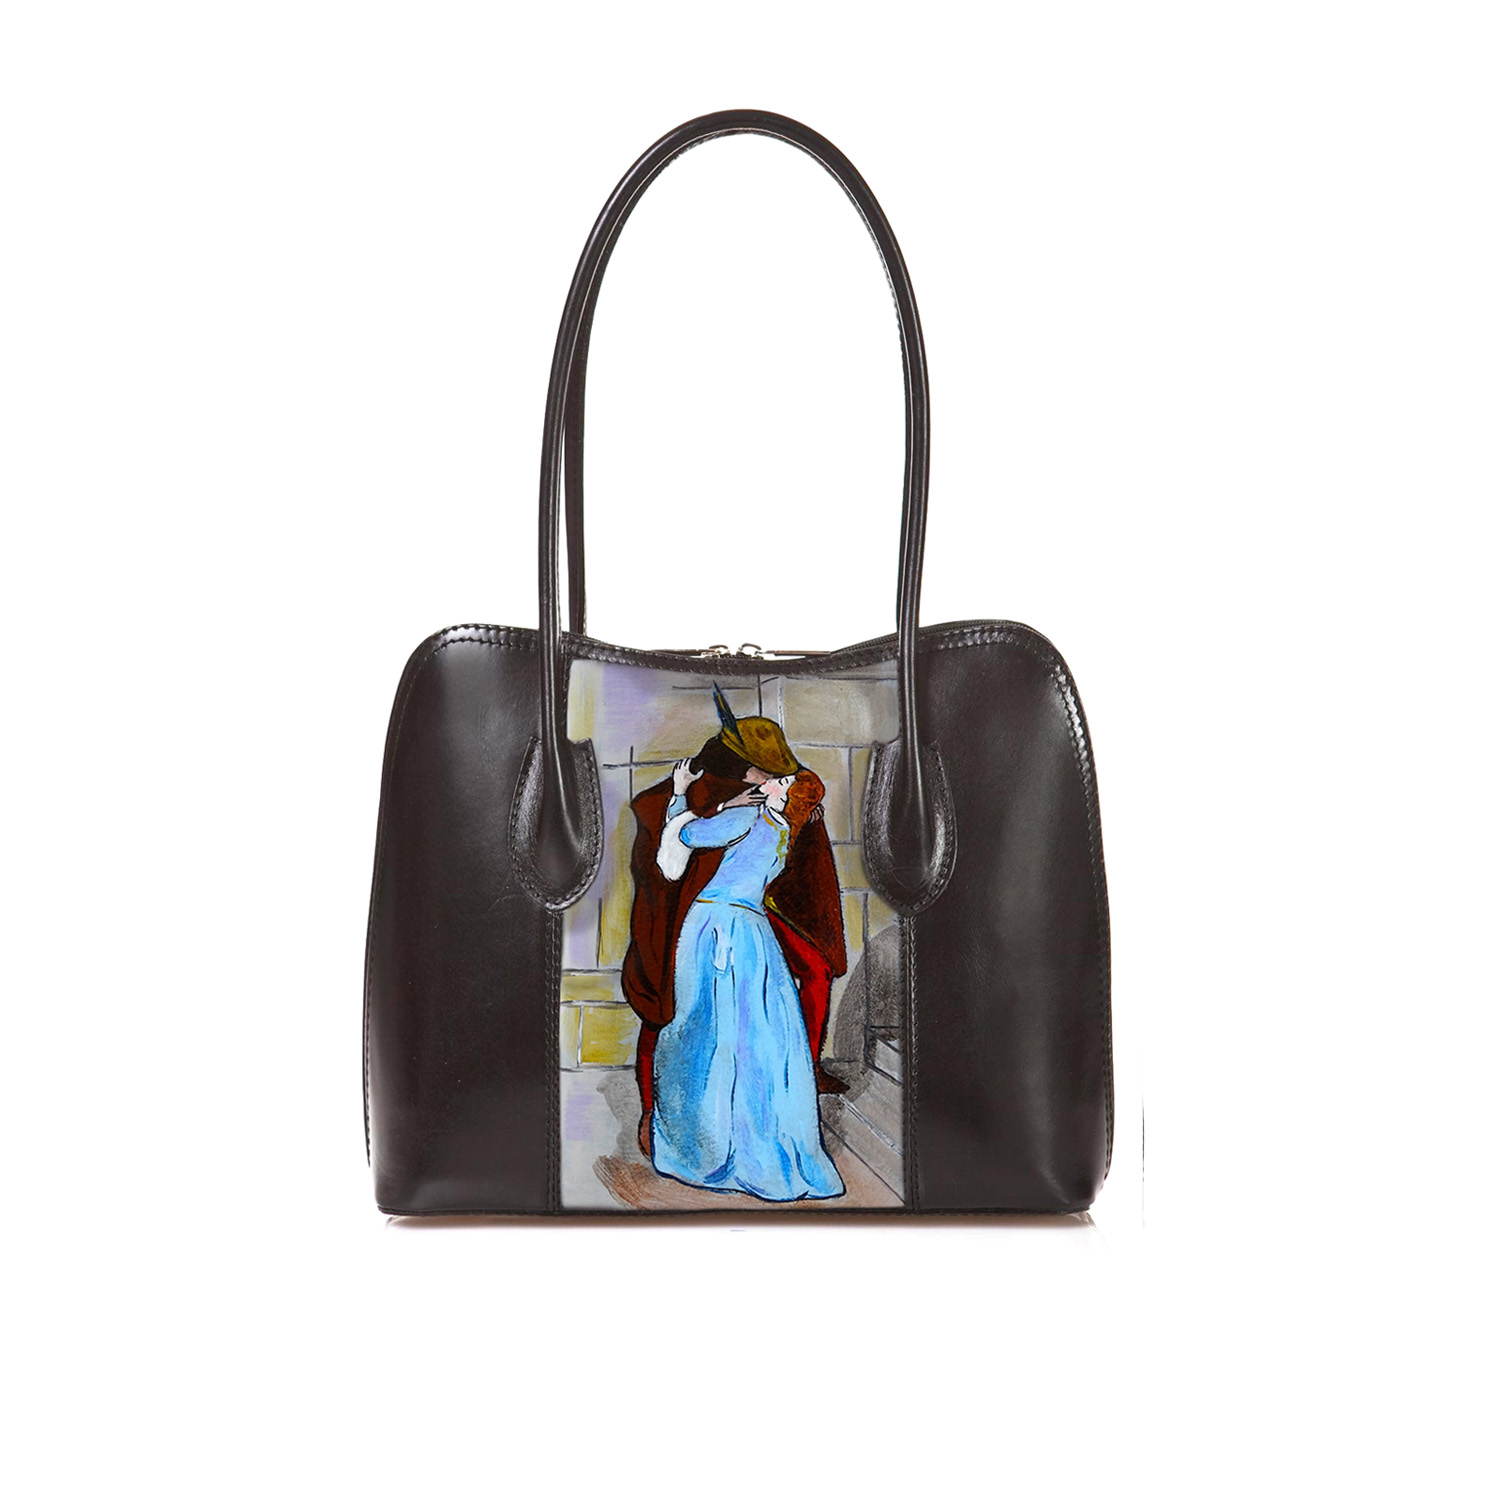 Hand-painted bag - The Kiss by Hayez